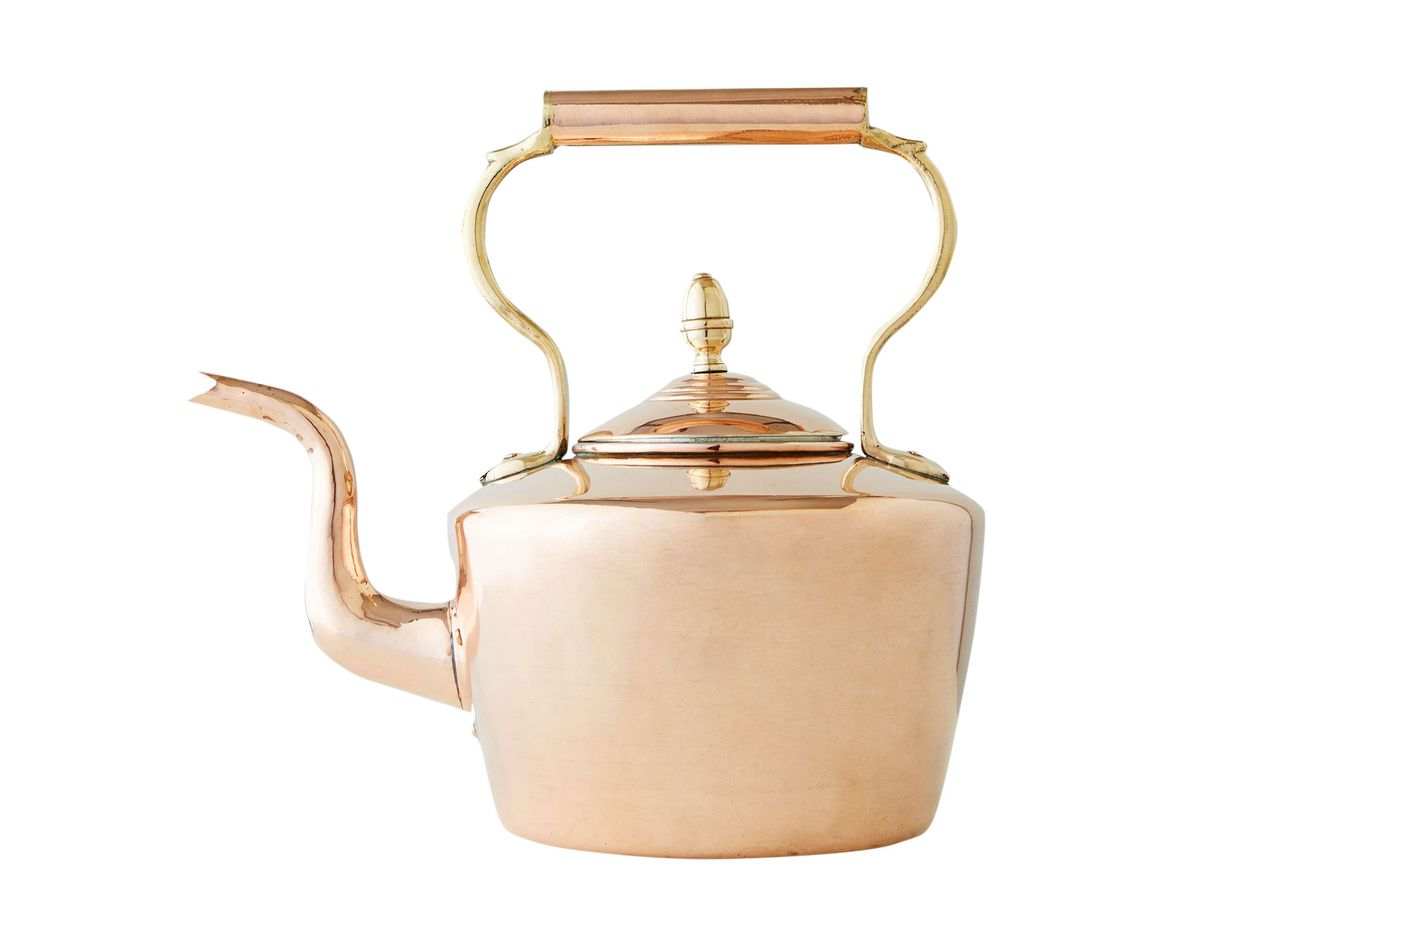 Coppermill Kitchen Vintage Copper Large Round English Tea Kettle